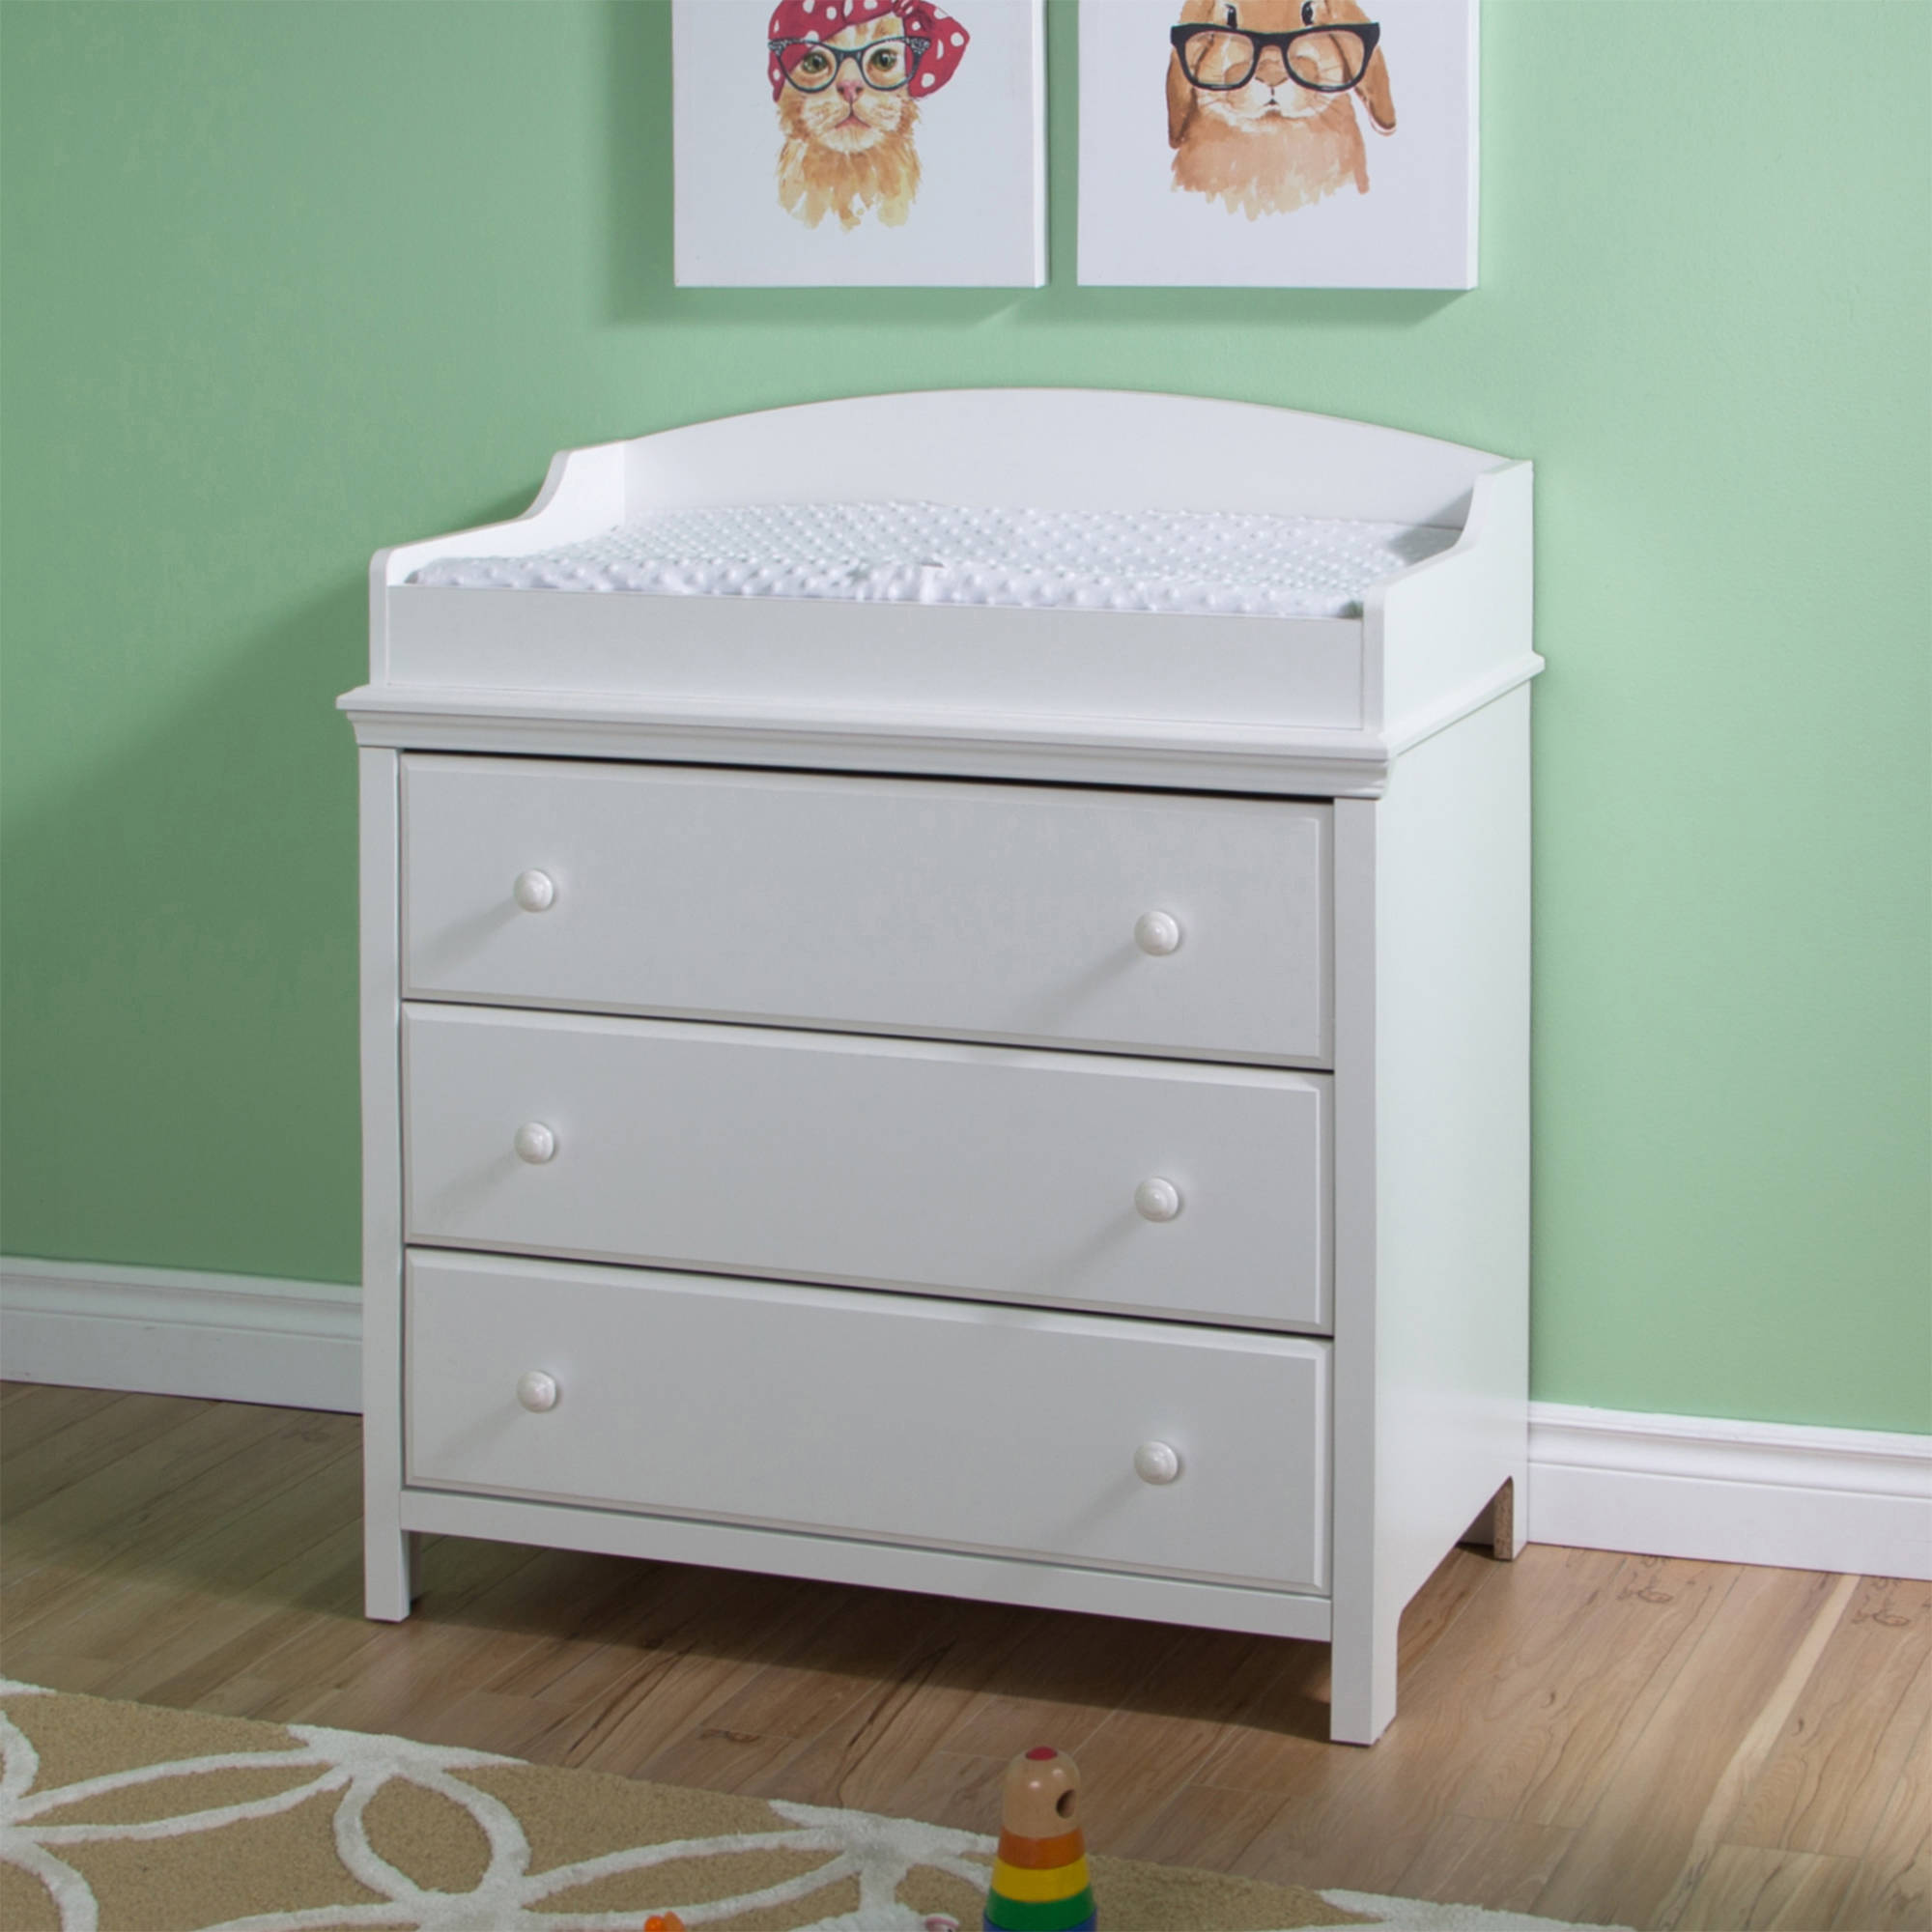 Beau South Shore Cotton Candy Changing Table With Drawers, Multiple Finishes